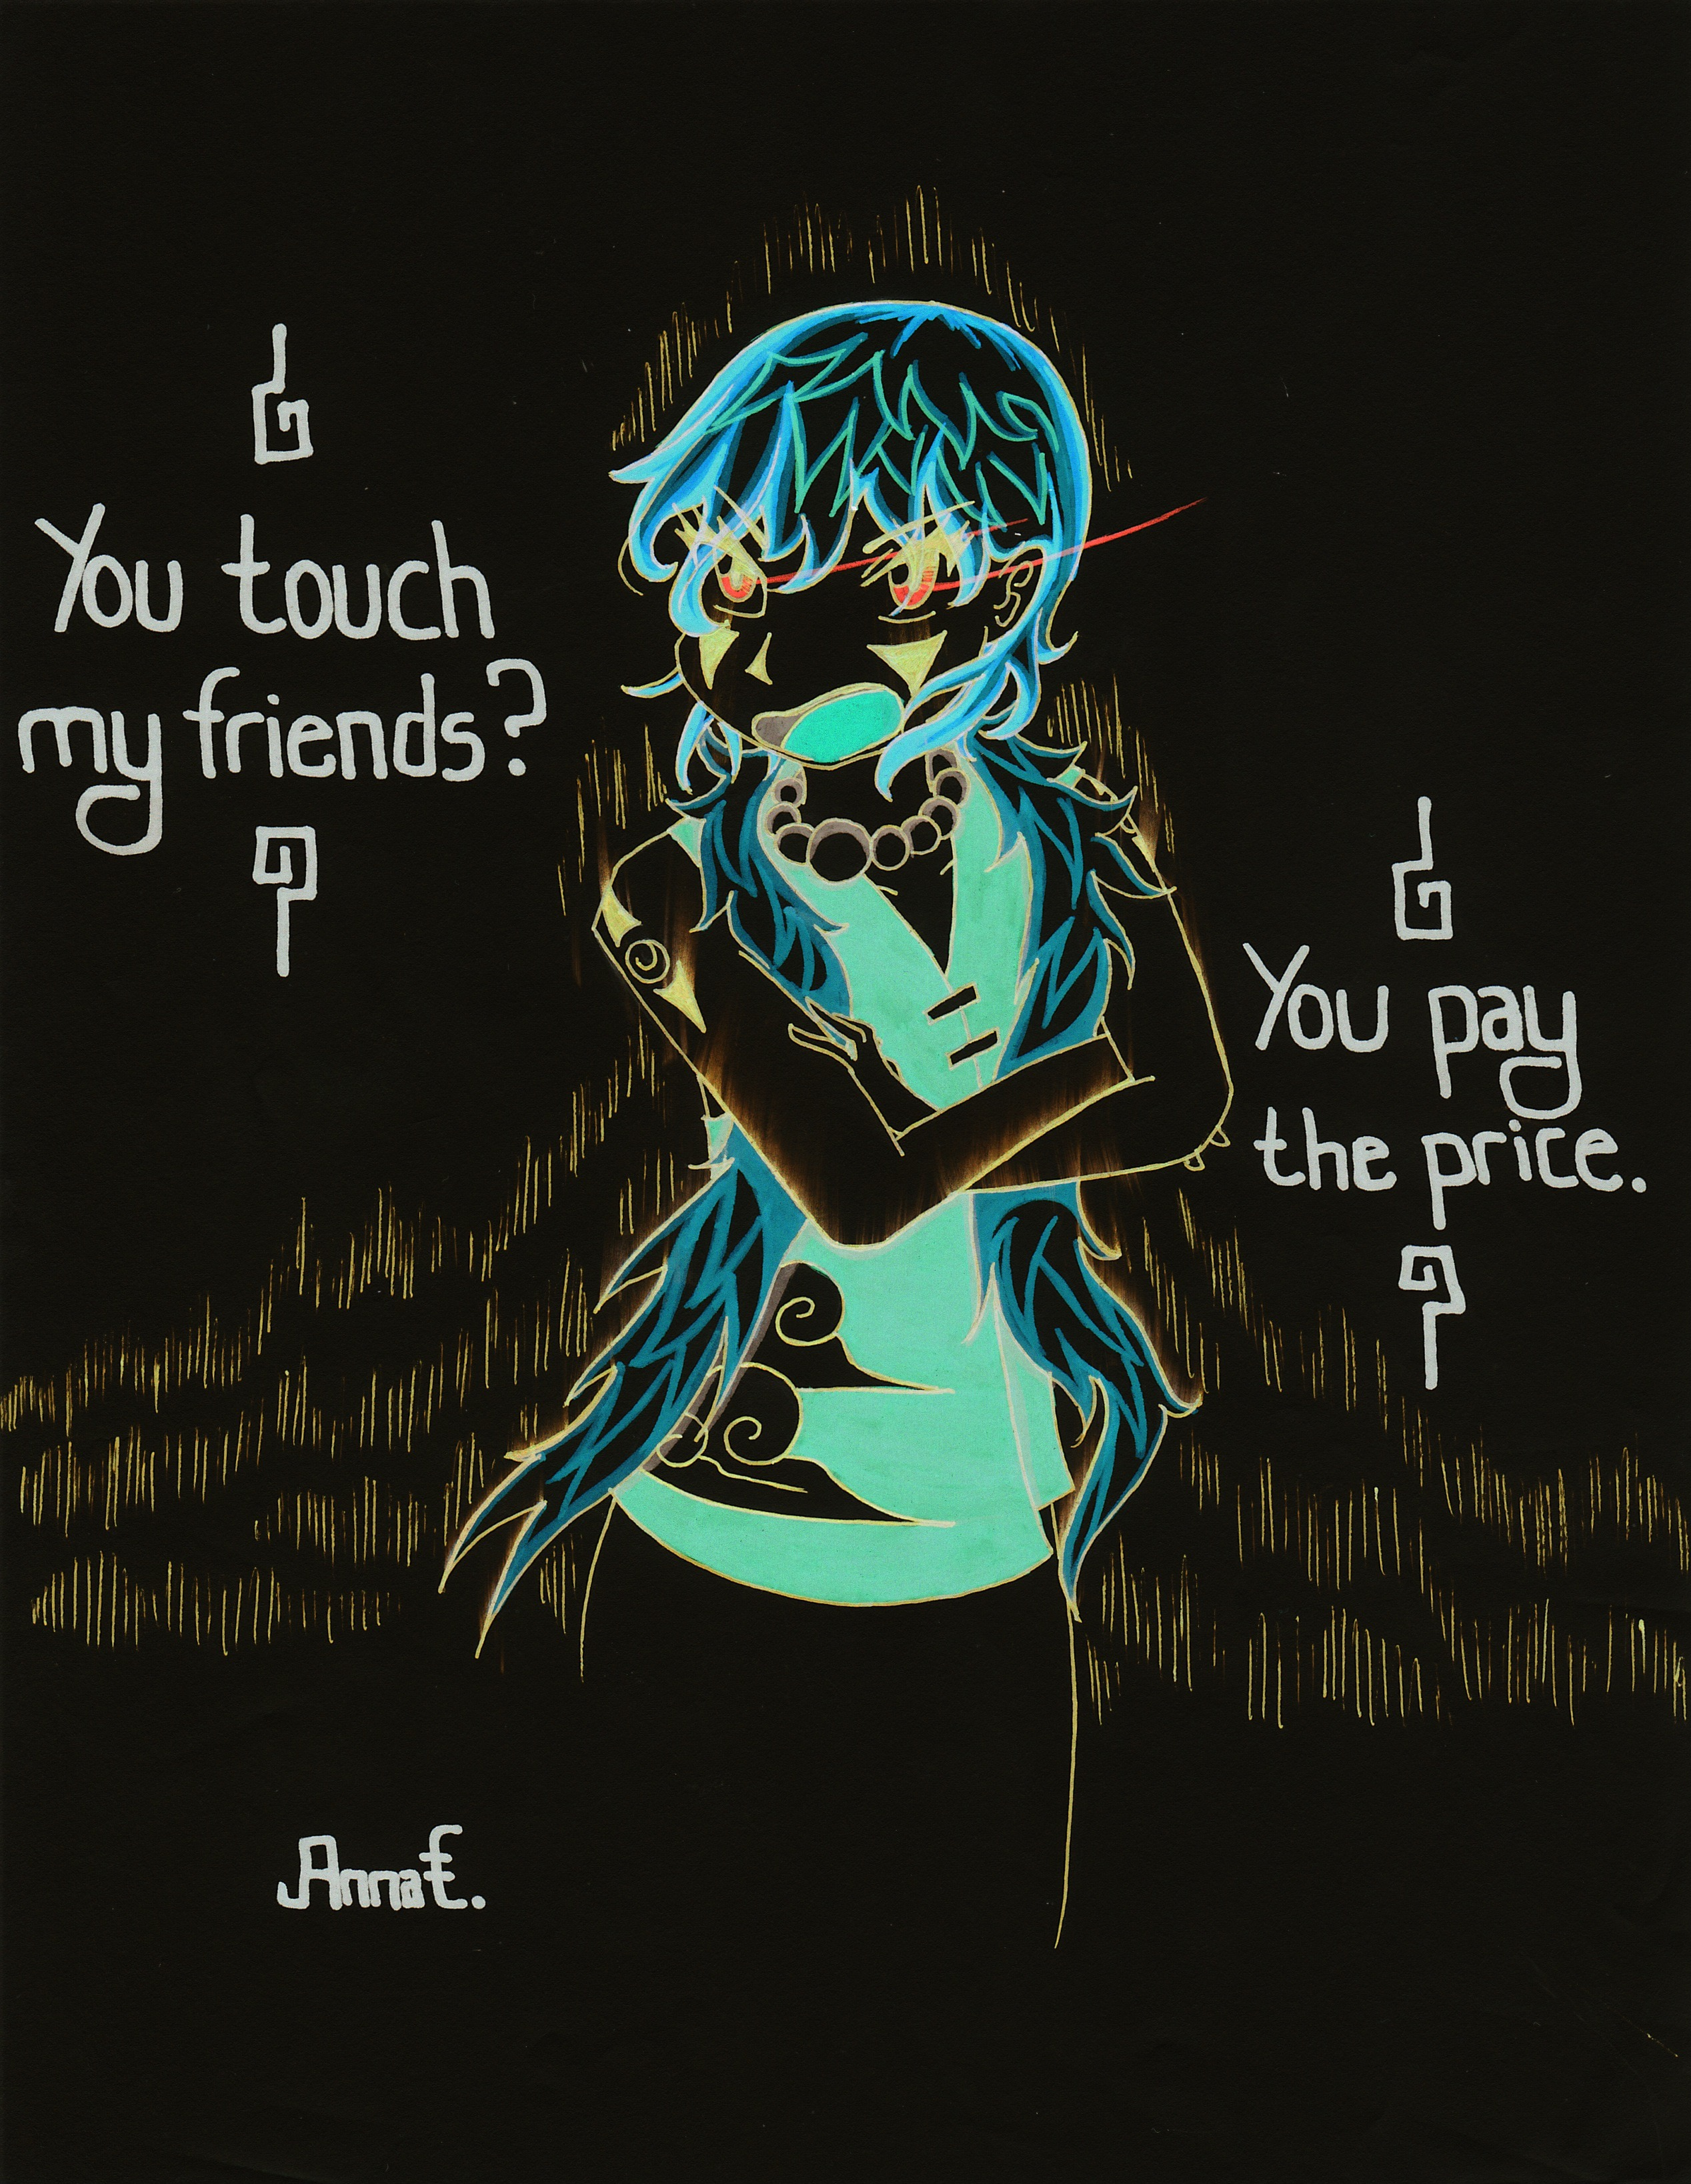 Don't You Touch My Friends